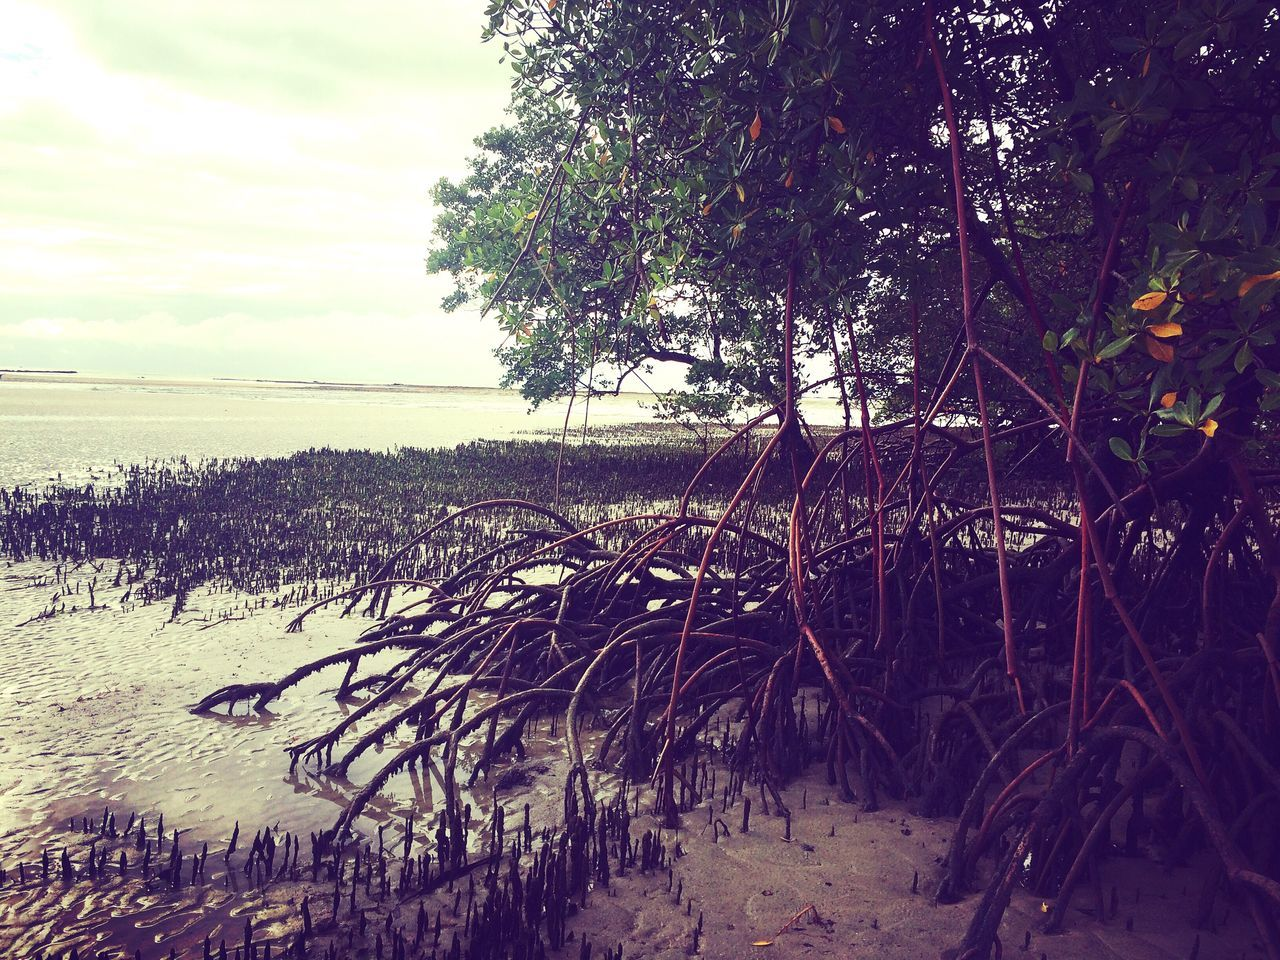 Trees Mangroves Beach Tranquility Sea Beauty In Nature Outdoors Water Sand Morning